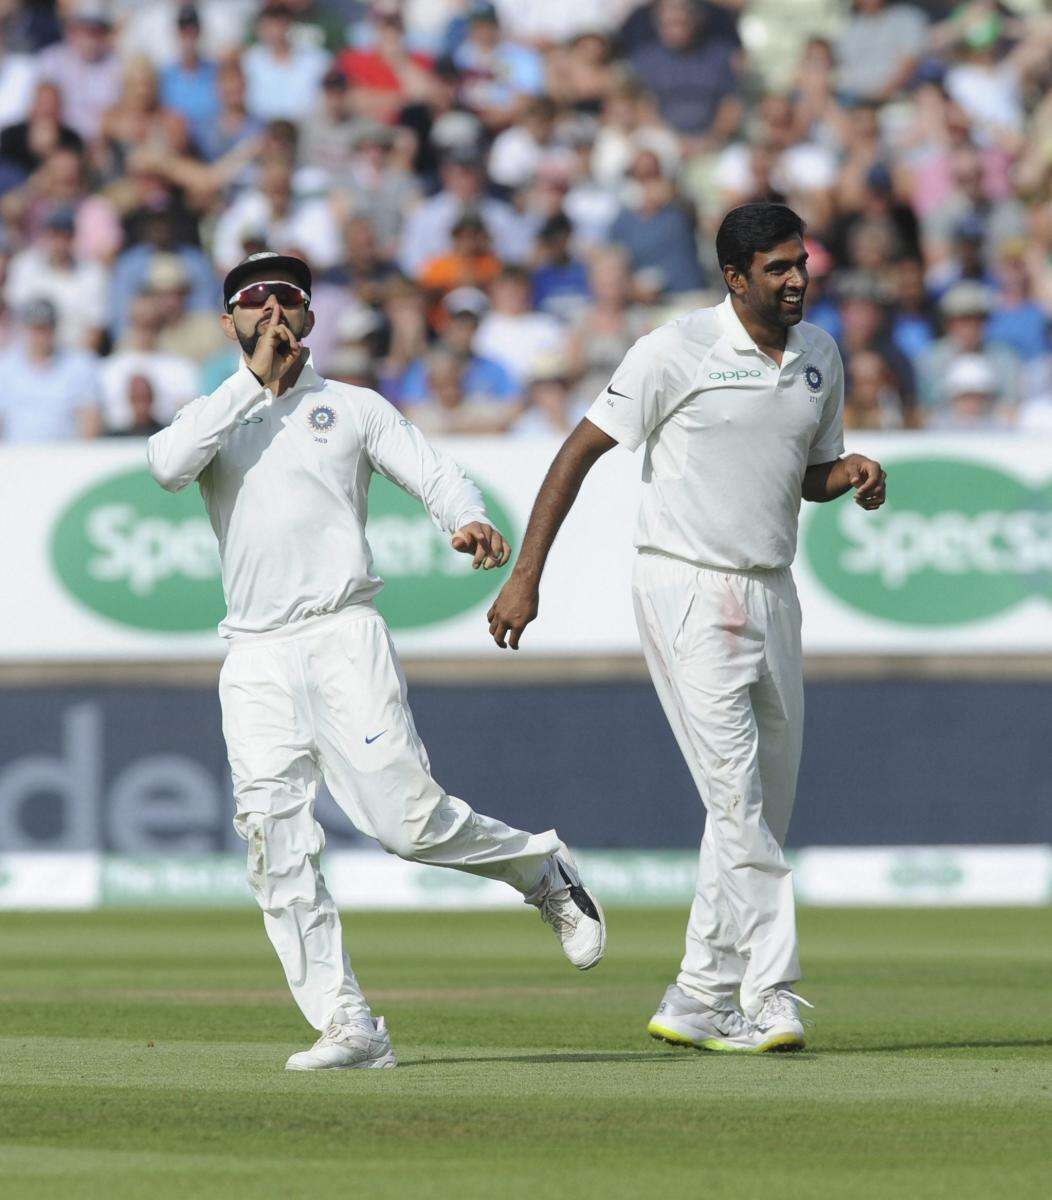 SILENCING THE OPPONENTS: Indian skipper Virat Kohli (left) celebrates with R Ashwin after dismissing England captain Joe Root with a superb direct hit. AP/PTI